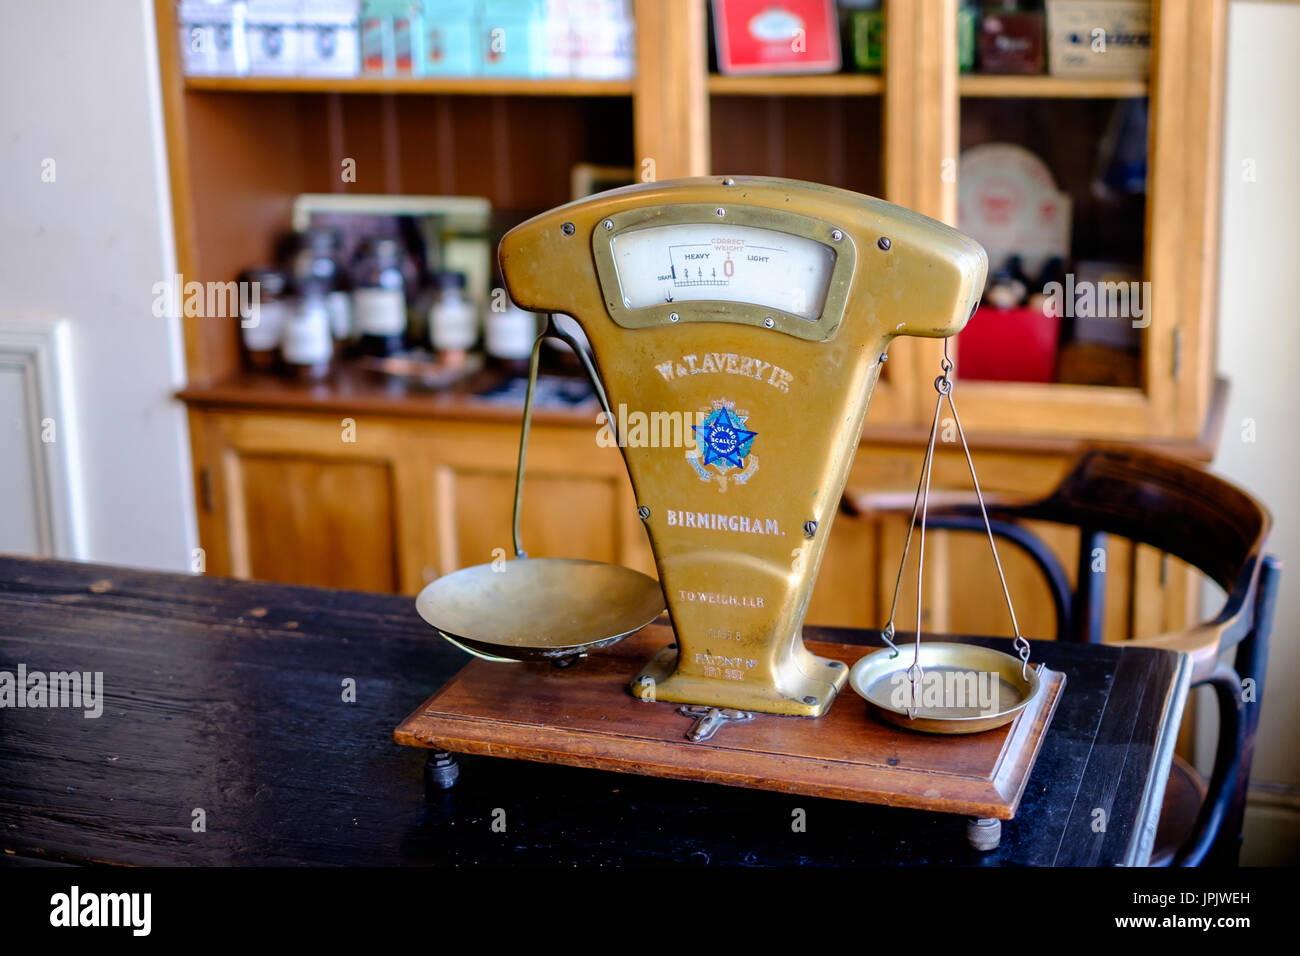 Antique Weighing Scale at Black Country Living Museum Cigeratte  - Stock Image